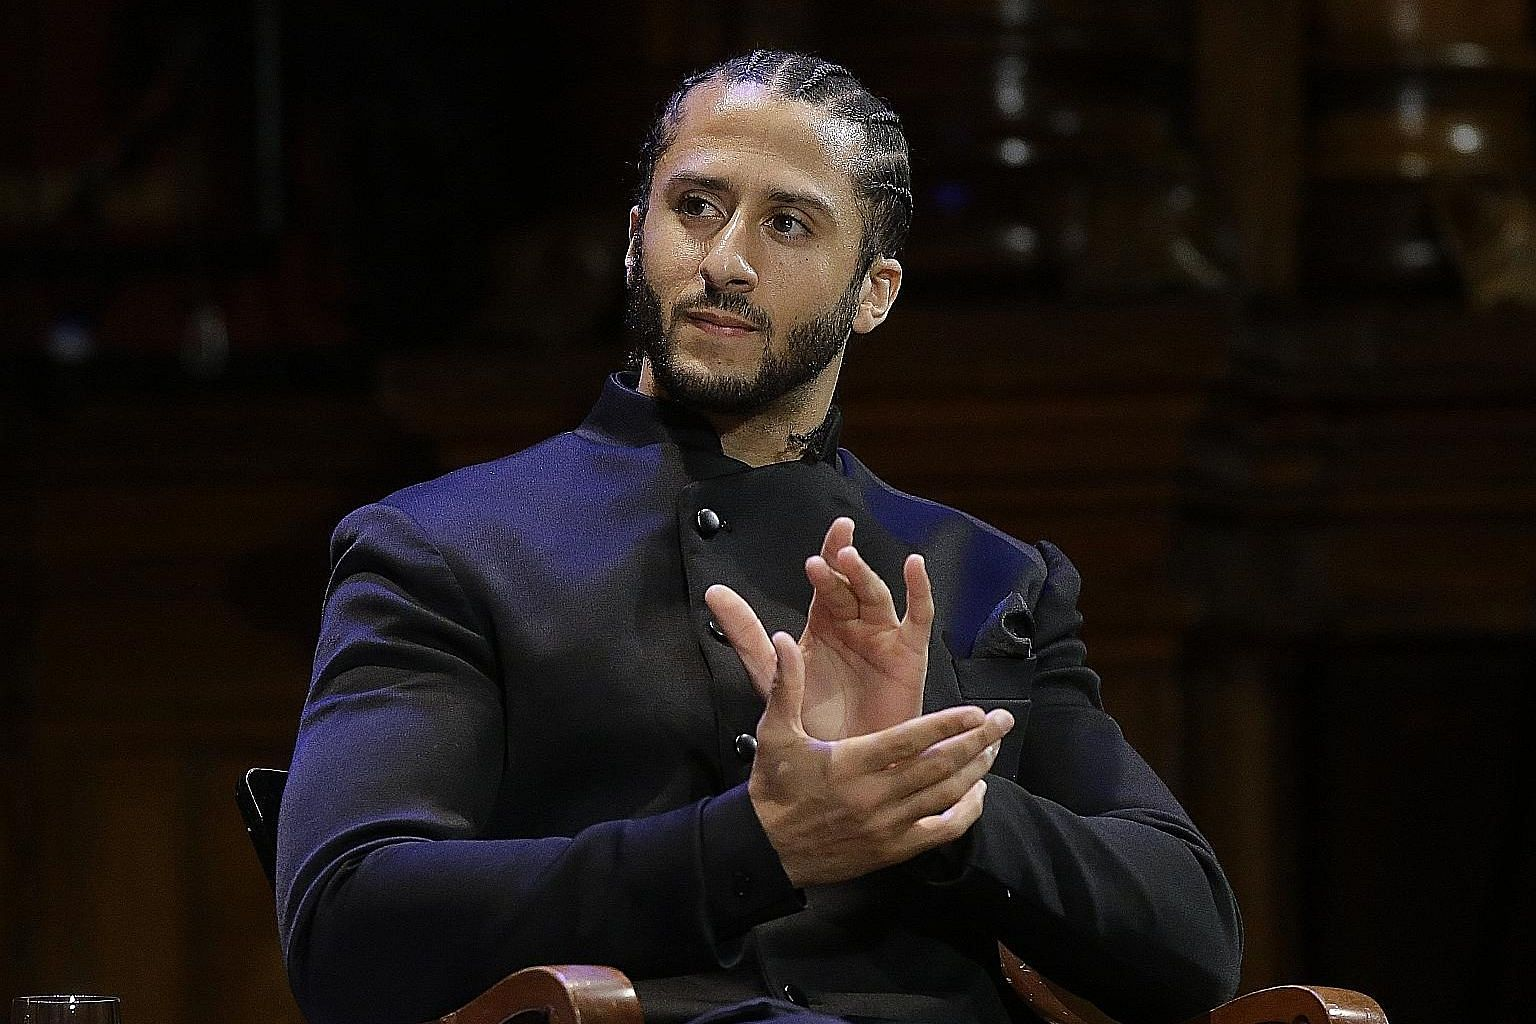 Colin Kaepernick tweeted on Wednesday that he has not played in the National Football League for 889 days.